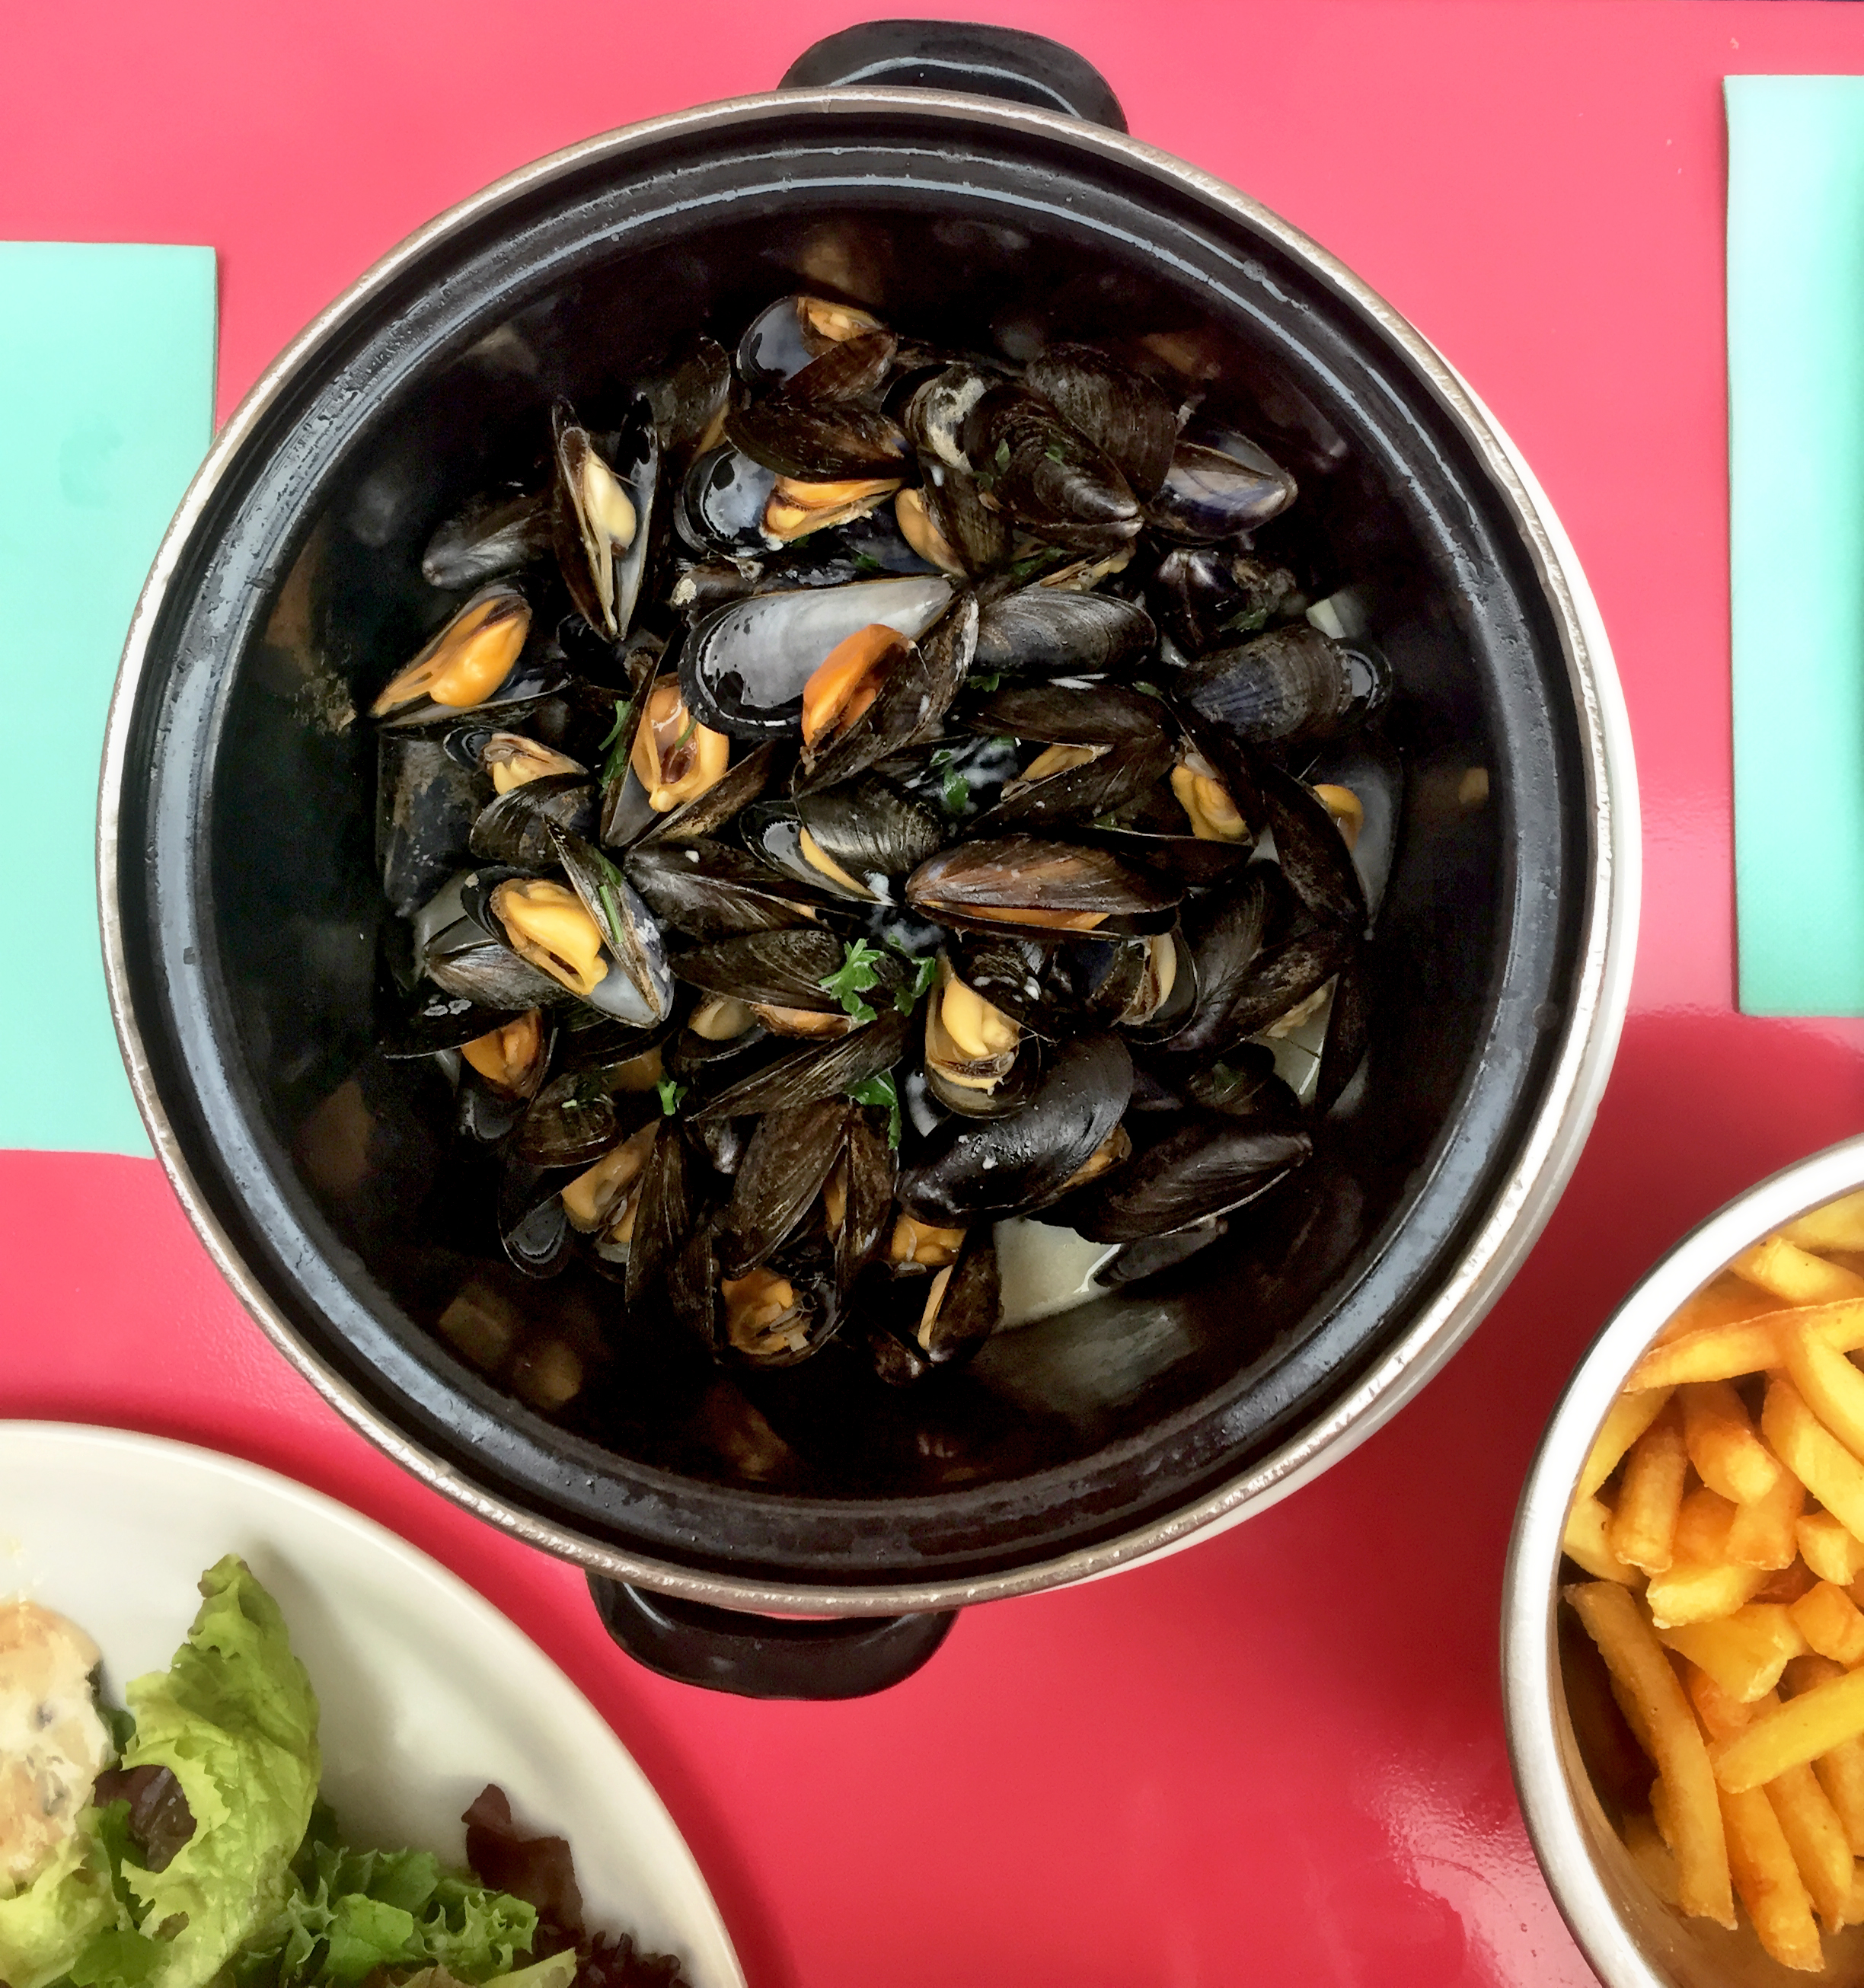 VILLEFRANCHE-SUR-MER | FRENCH RIVIERA | LE LOCO LOCO | MUSSELS | WE LOVE FOOD, IT'S ALL WE EAT